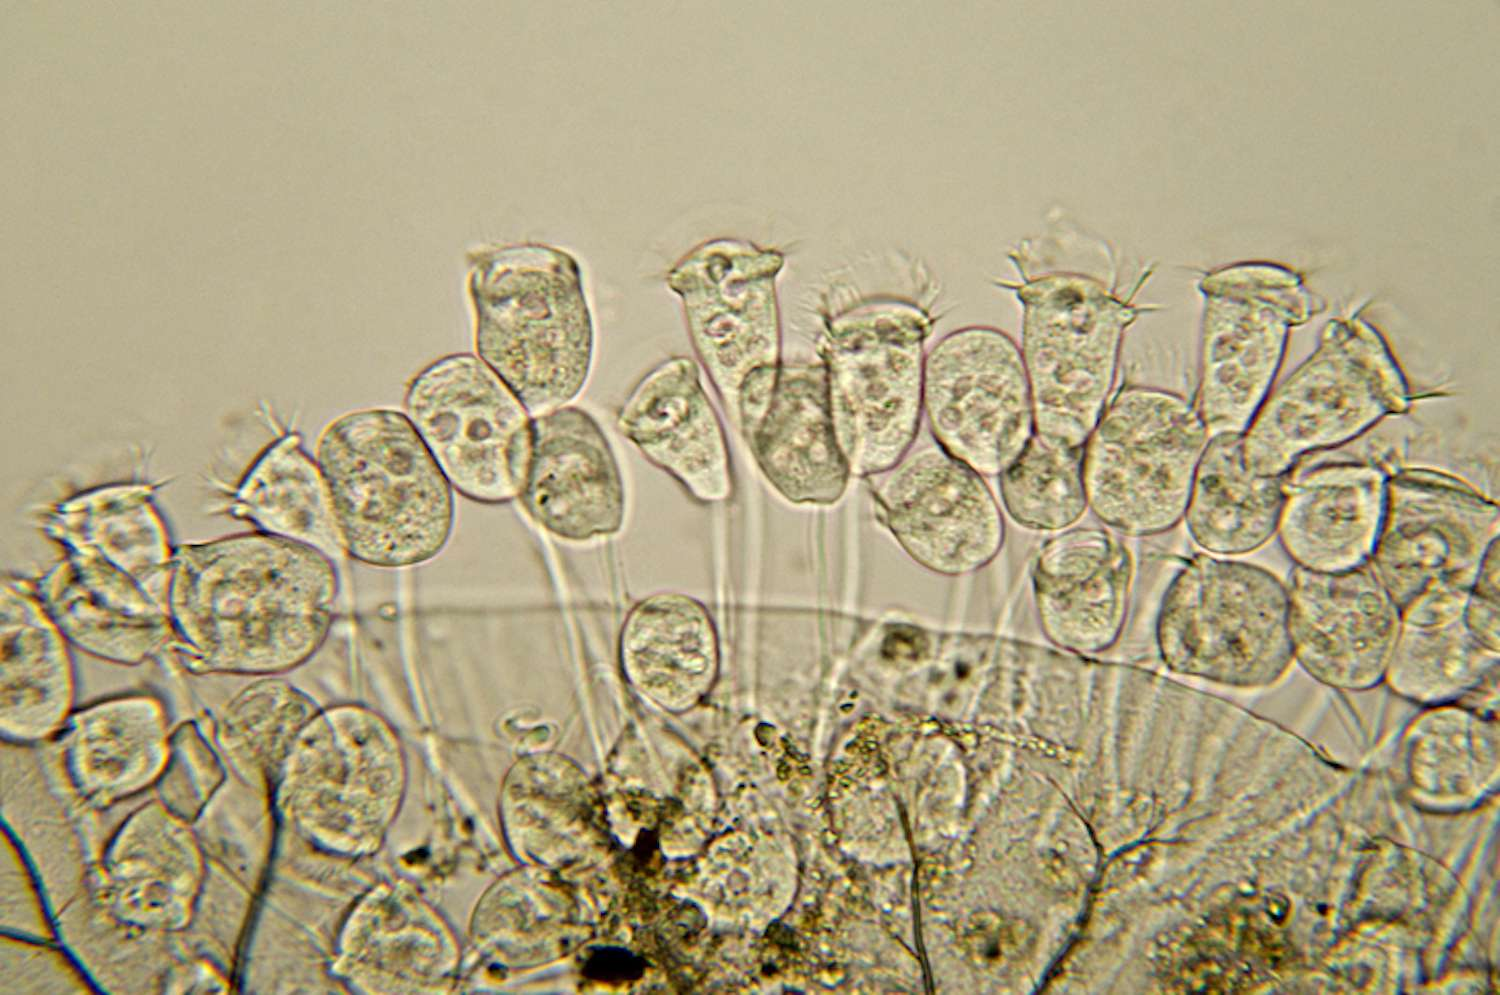 A micrograph of the vorticella species